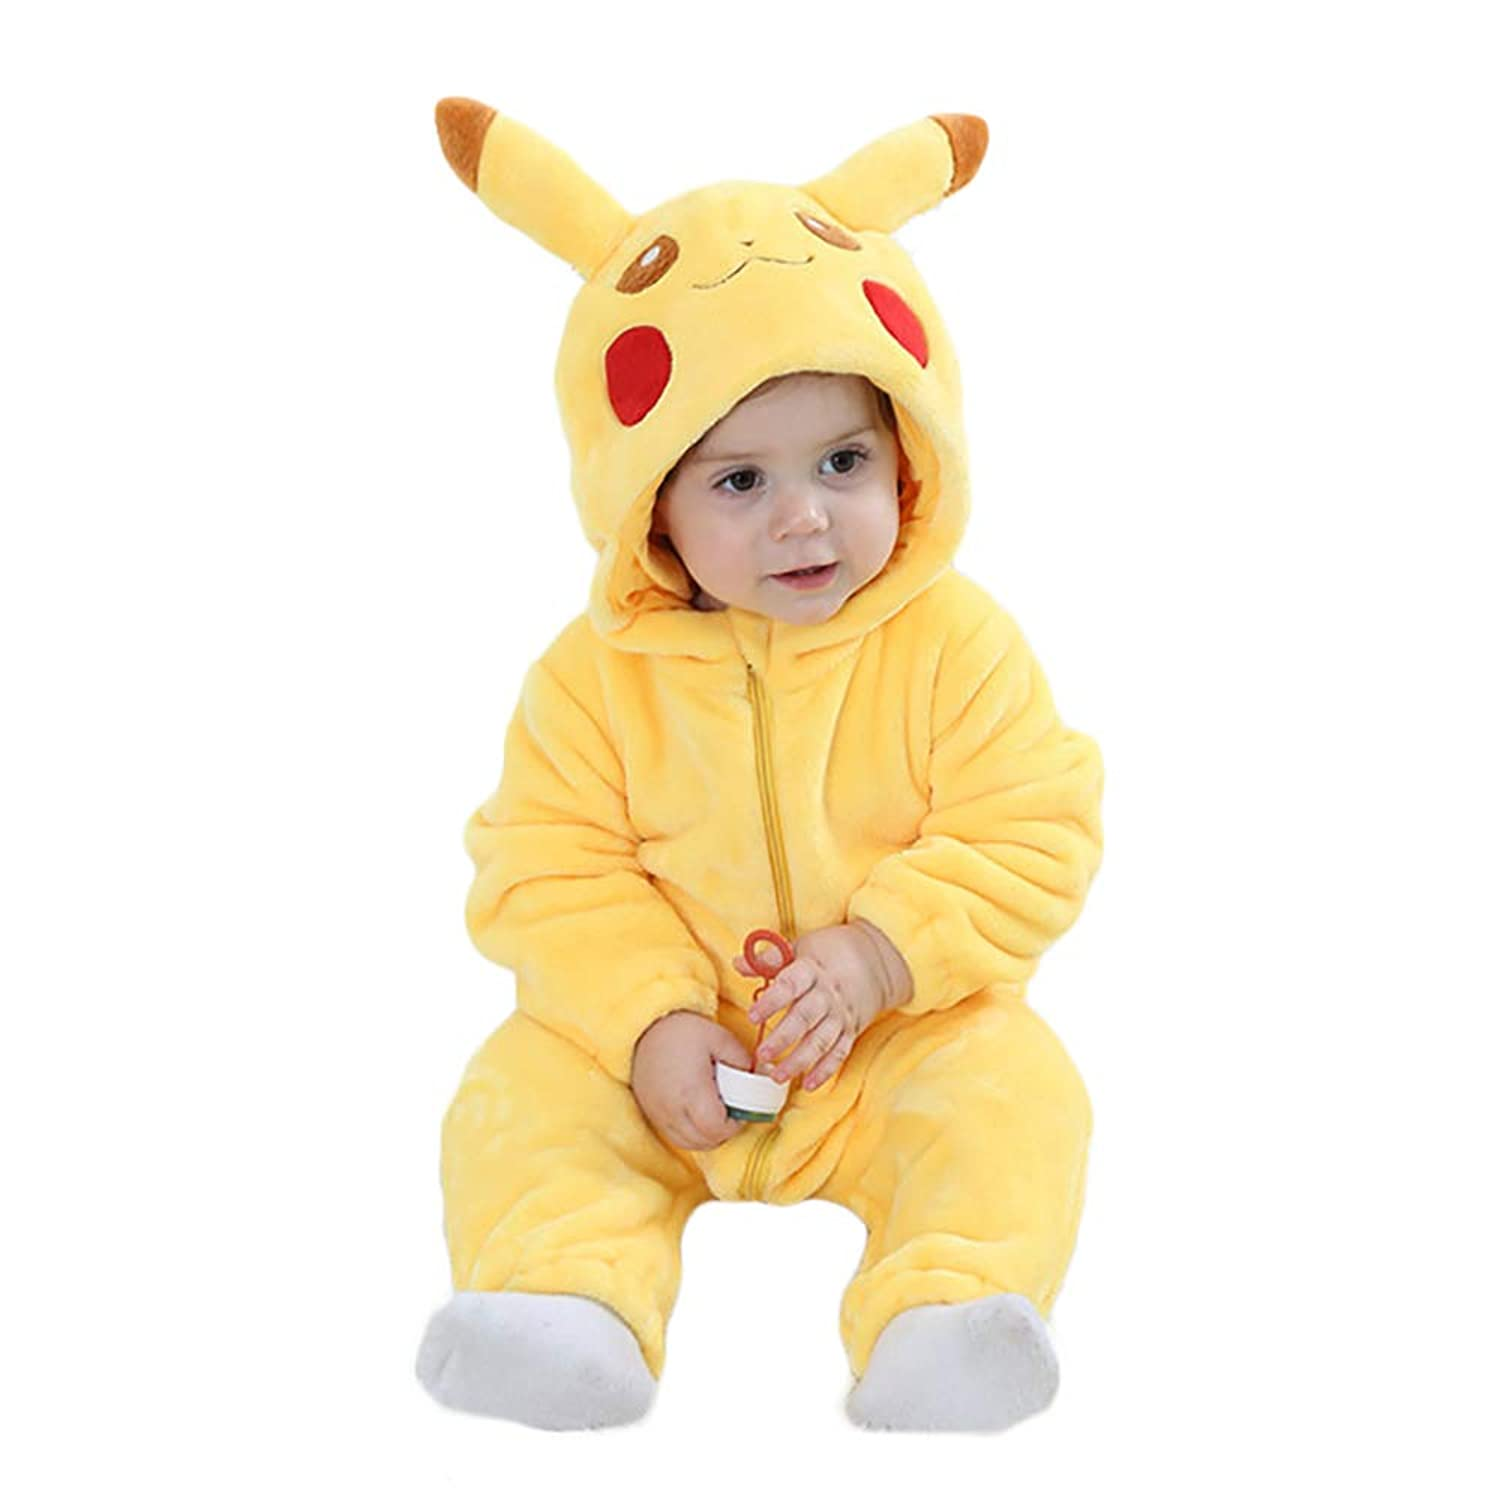 Unisex Baby Flannel Romper Animal Onesie Costume Hooded Cartoon Outfit Suit